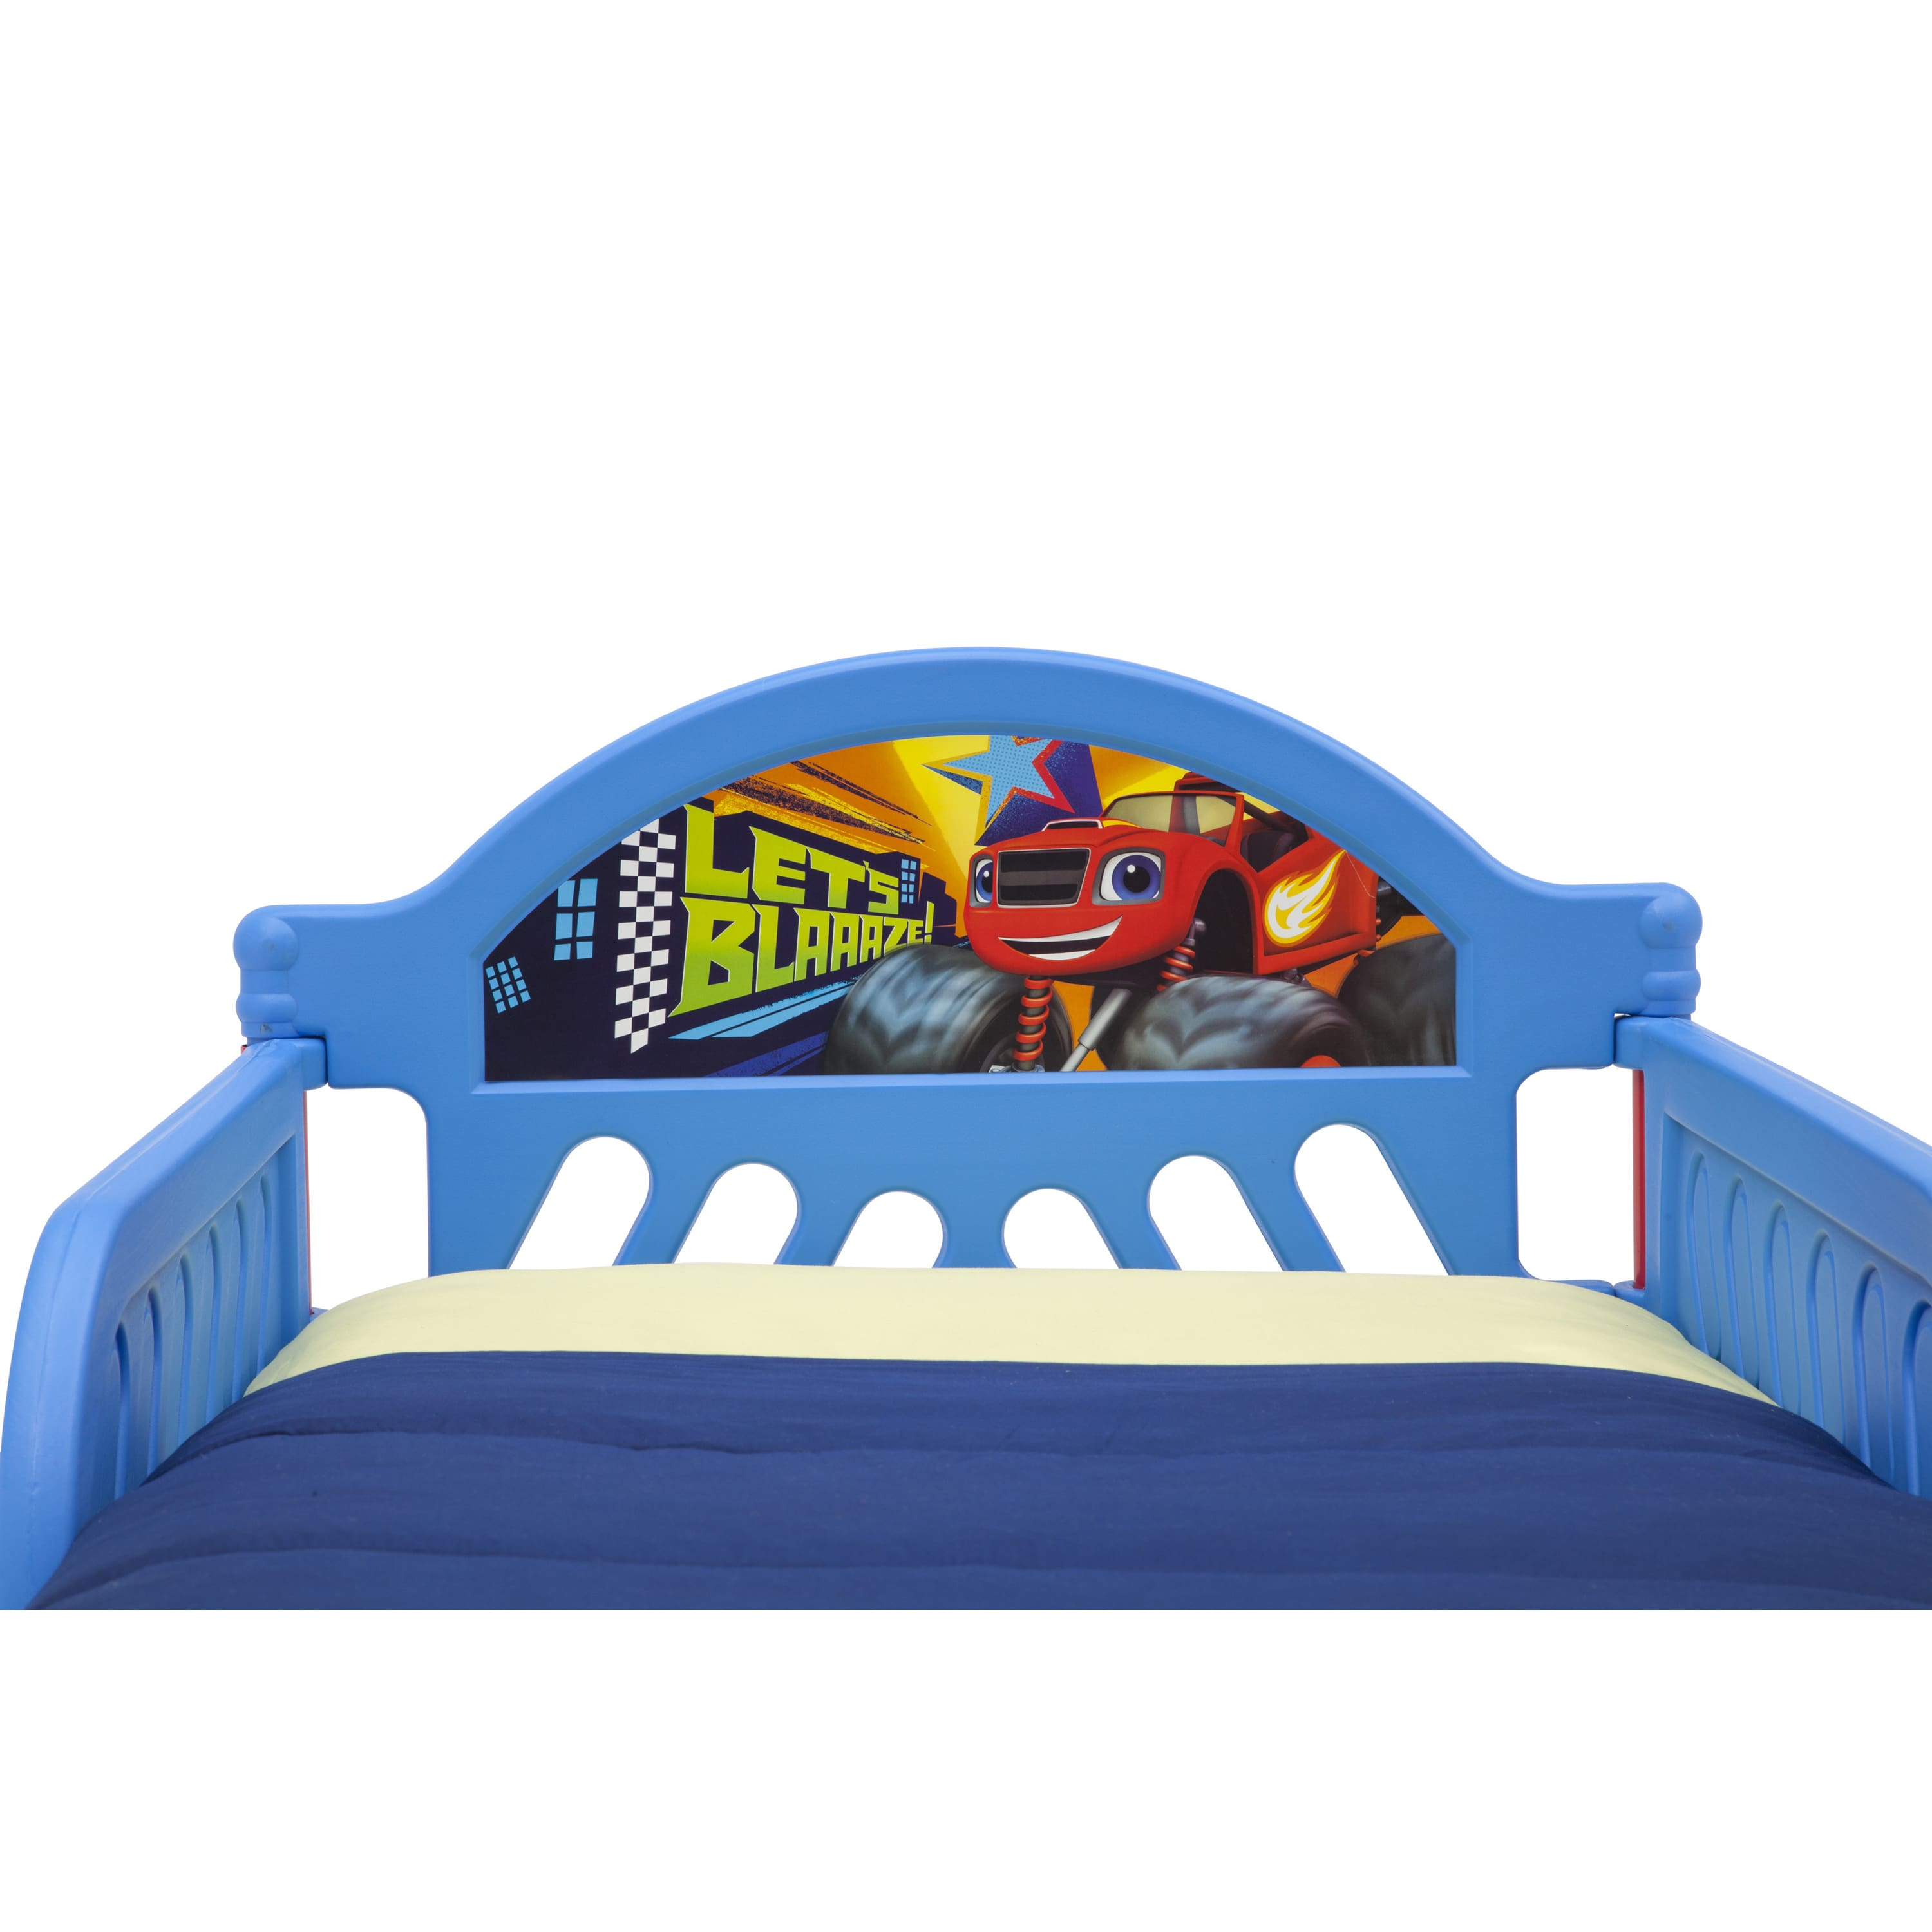 Kids Amp Toddler Beds For Less